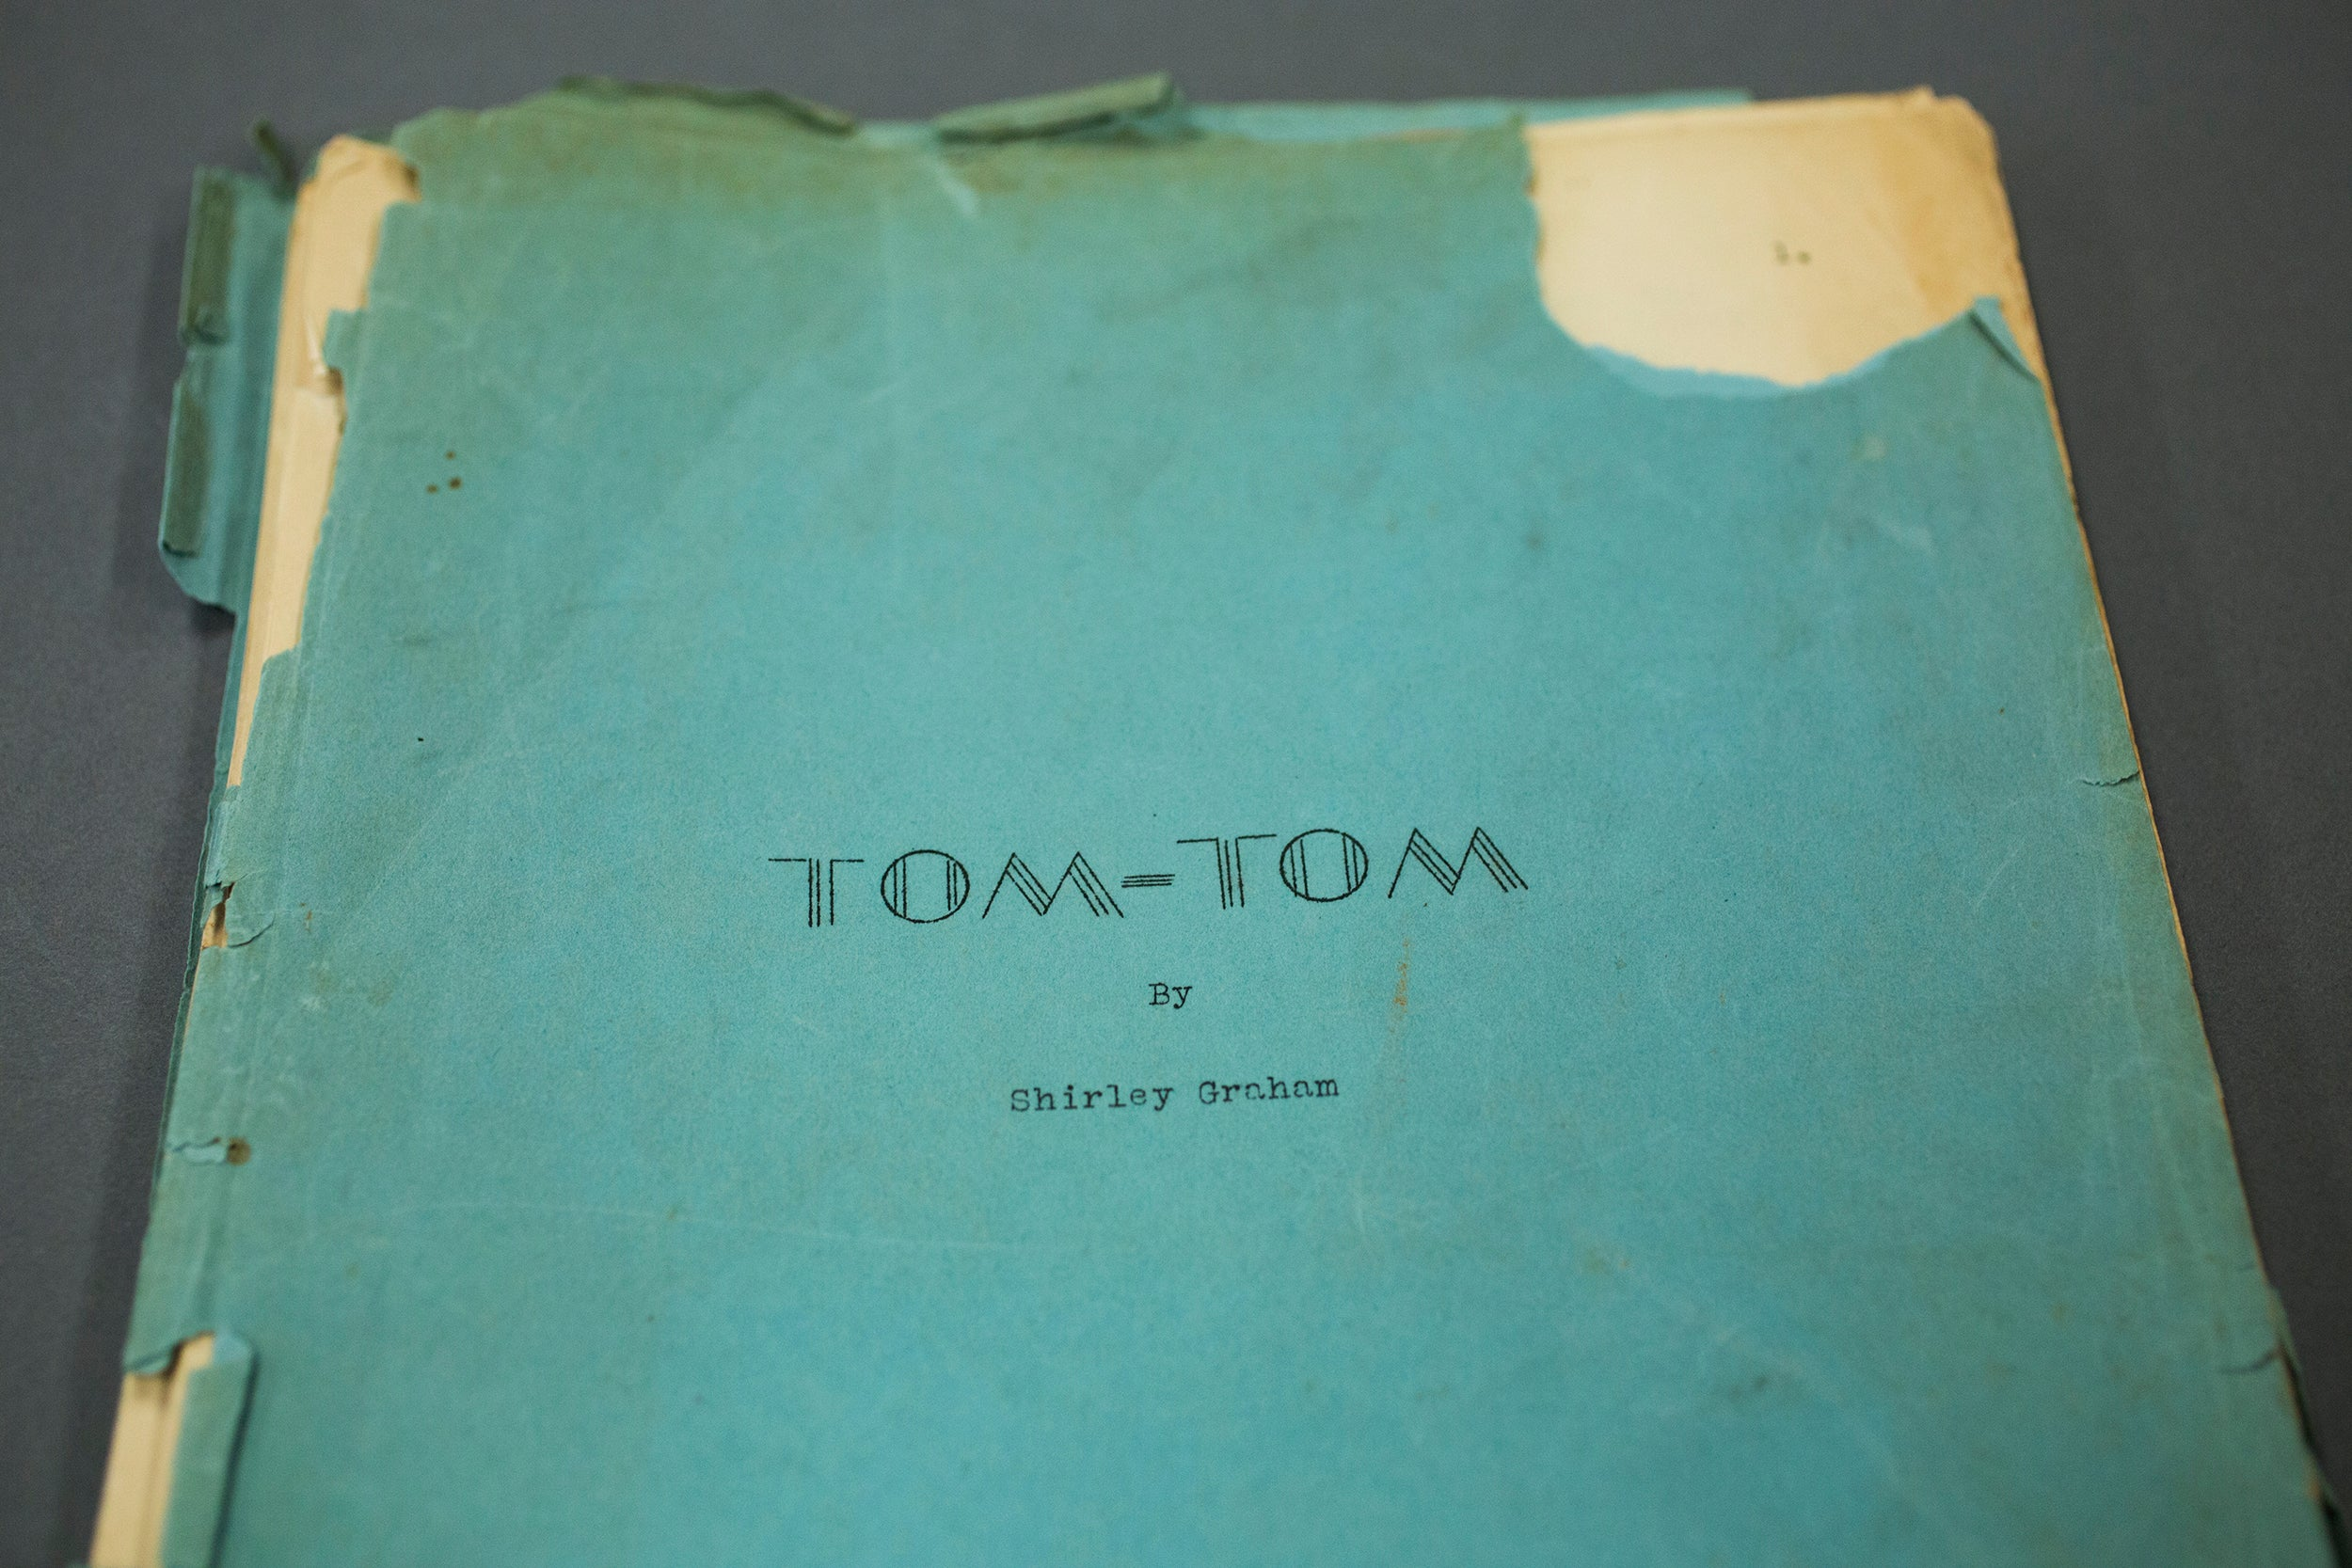 """Despite its successful debut in 1932, the opera """"Tom Tom,"""" by composer Shirley Graham, was never performed again."""